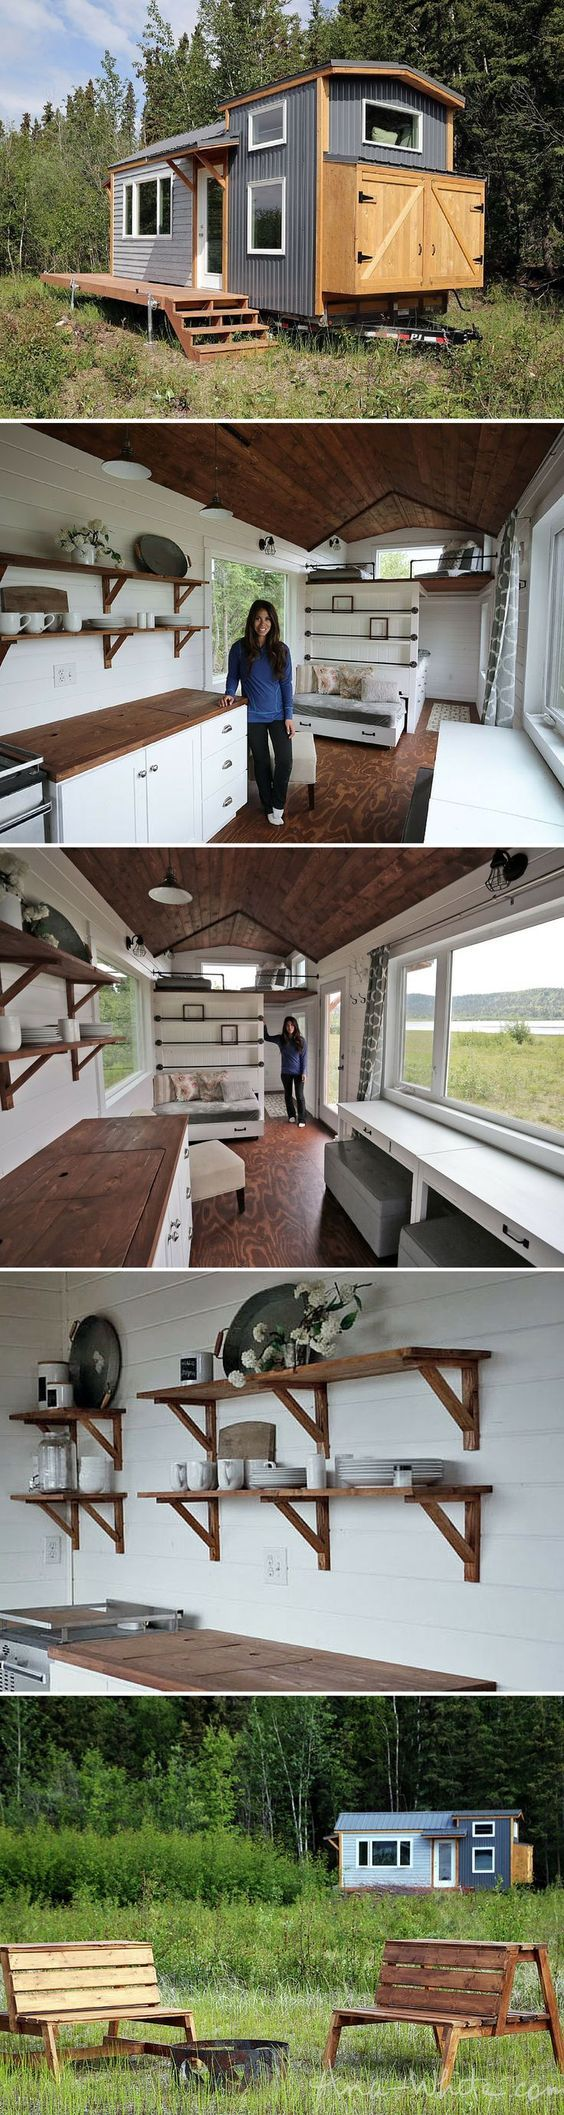 A stunning 204 sq ft tiny house, designed by blogger Ana White, and set in the idyllic Alaskan wilderness.